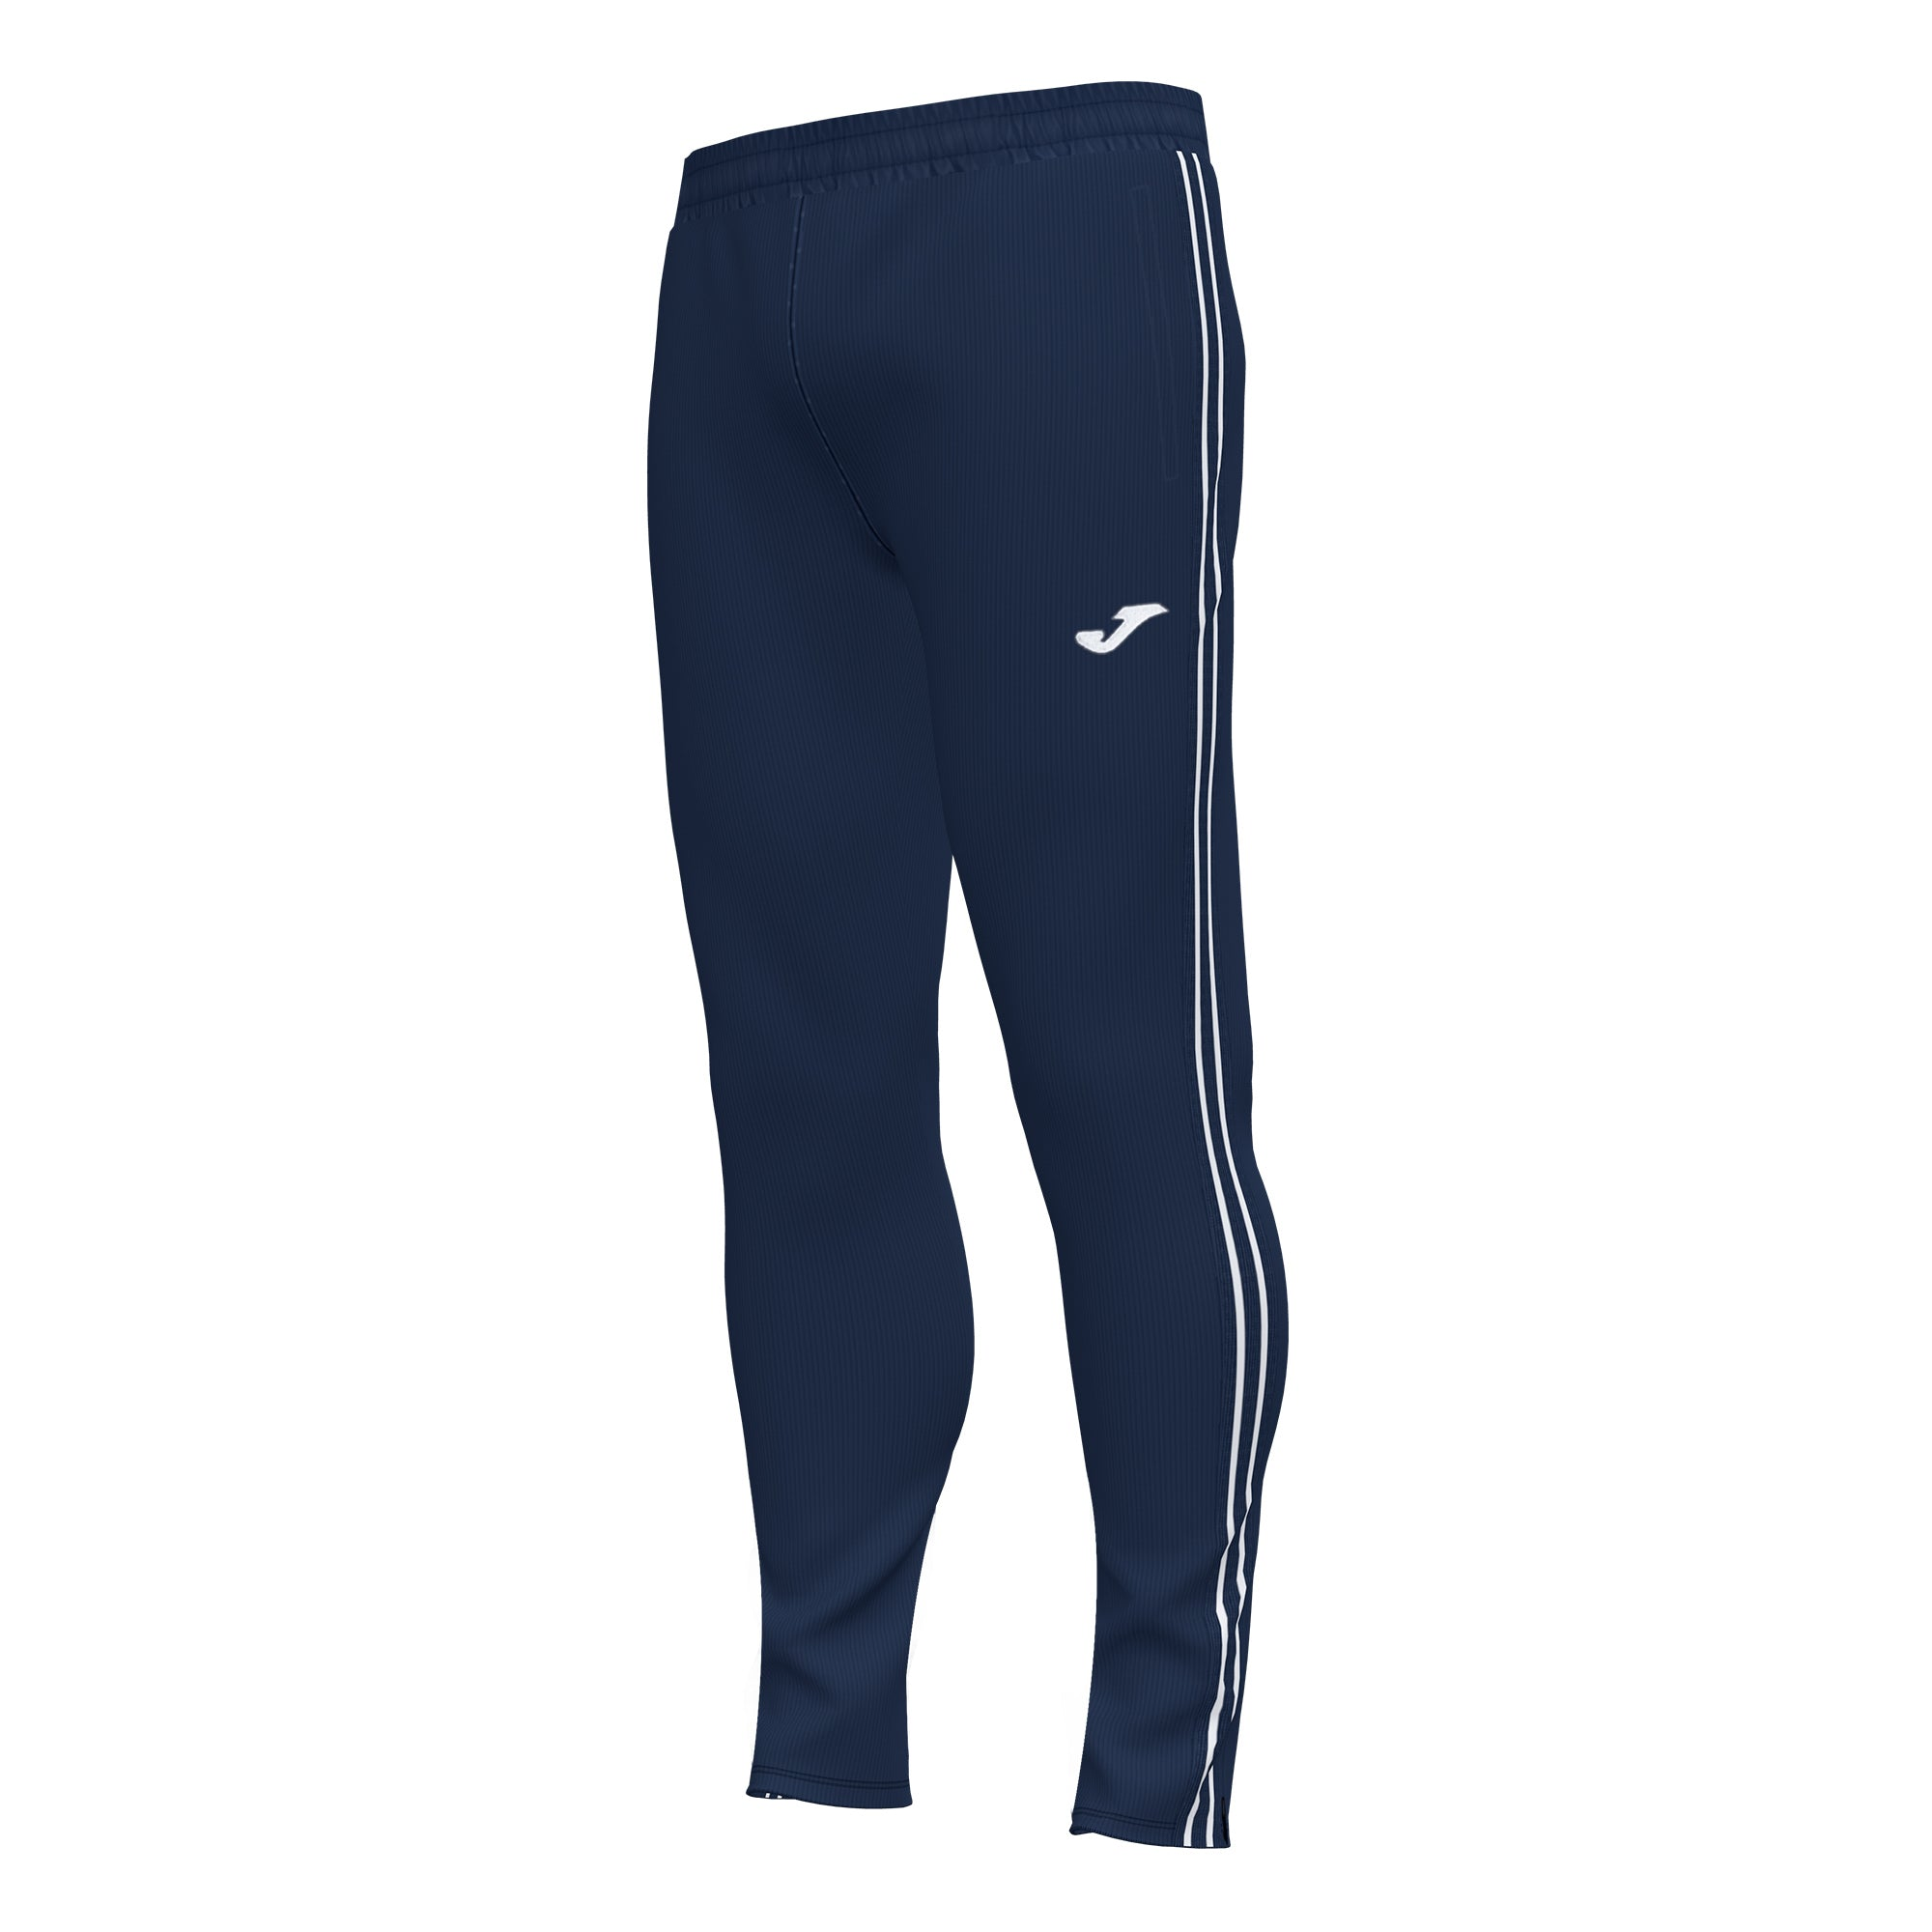 Staveley United Club Tracksuit pants